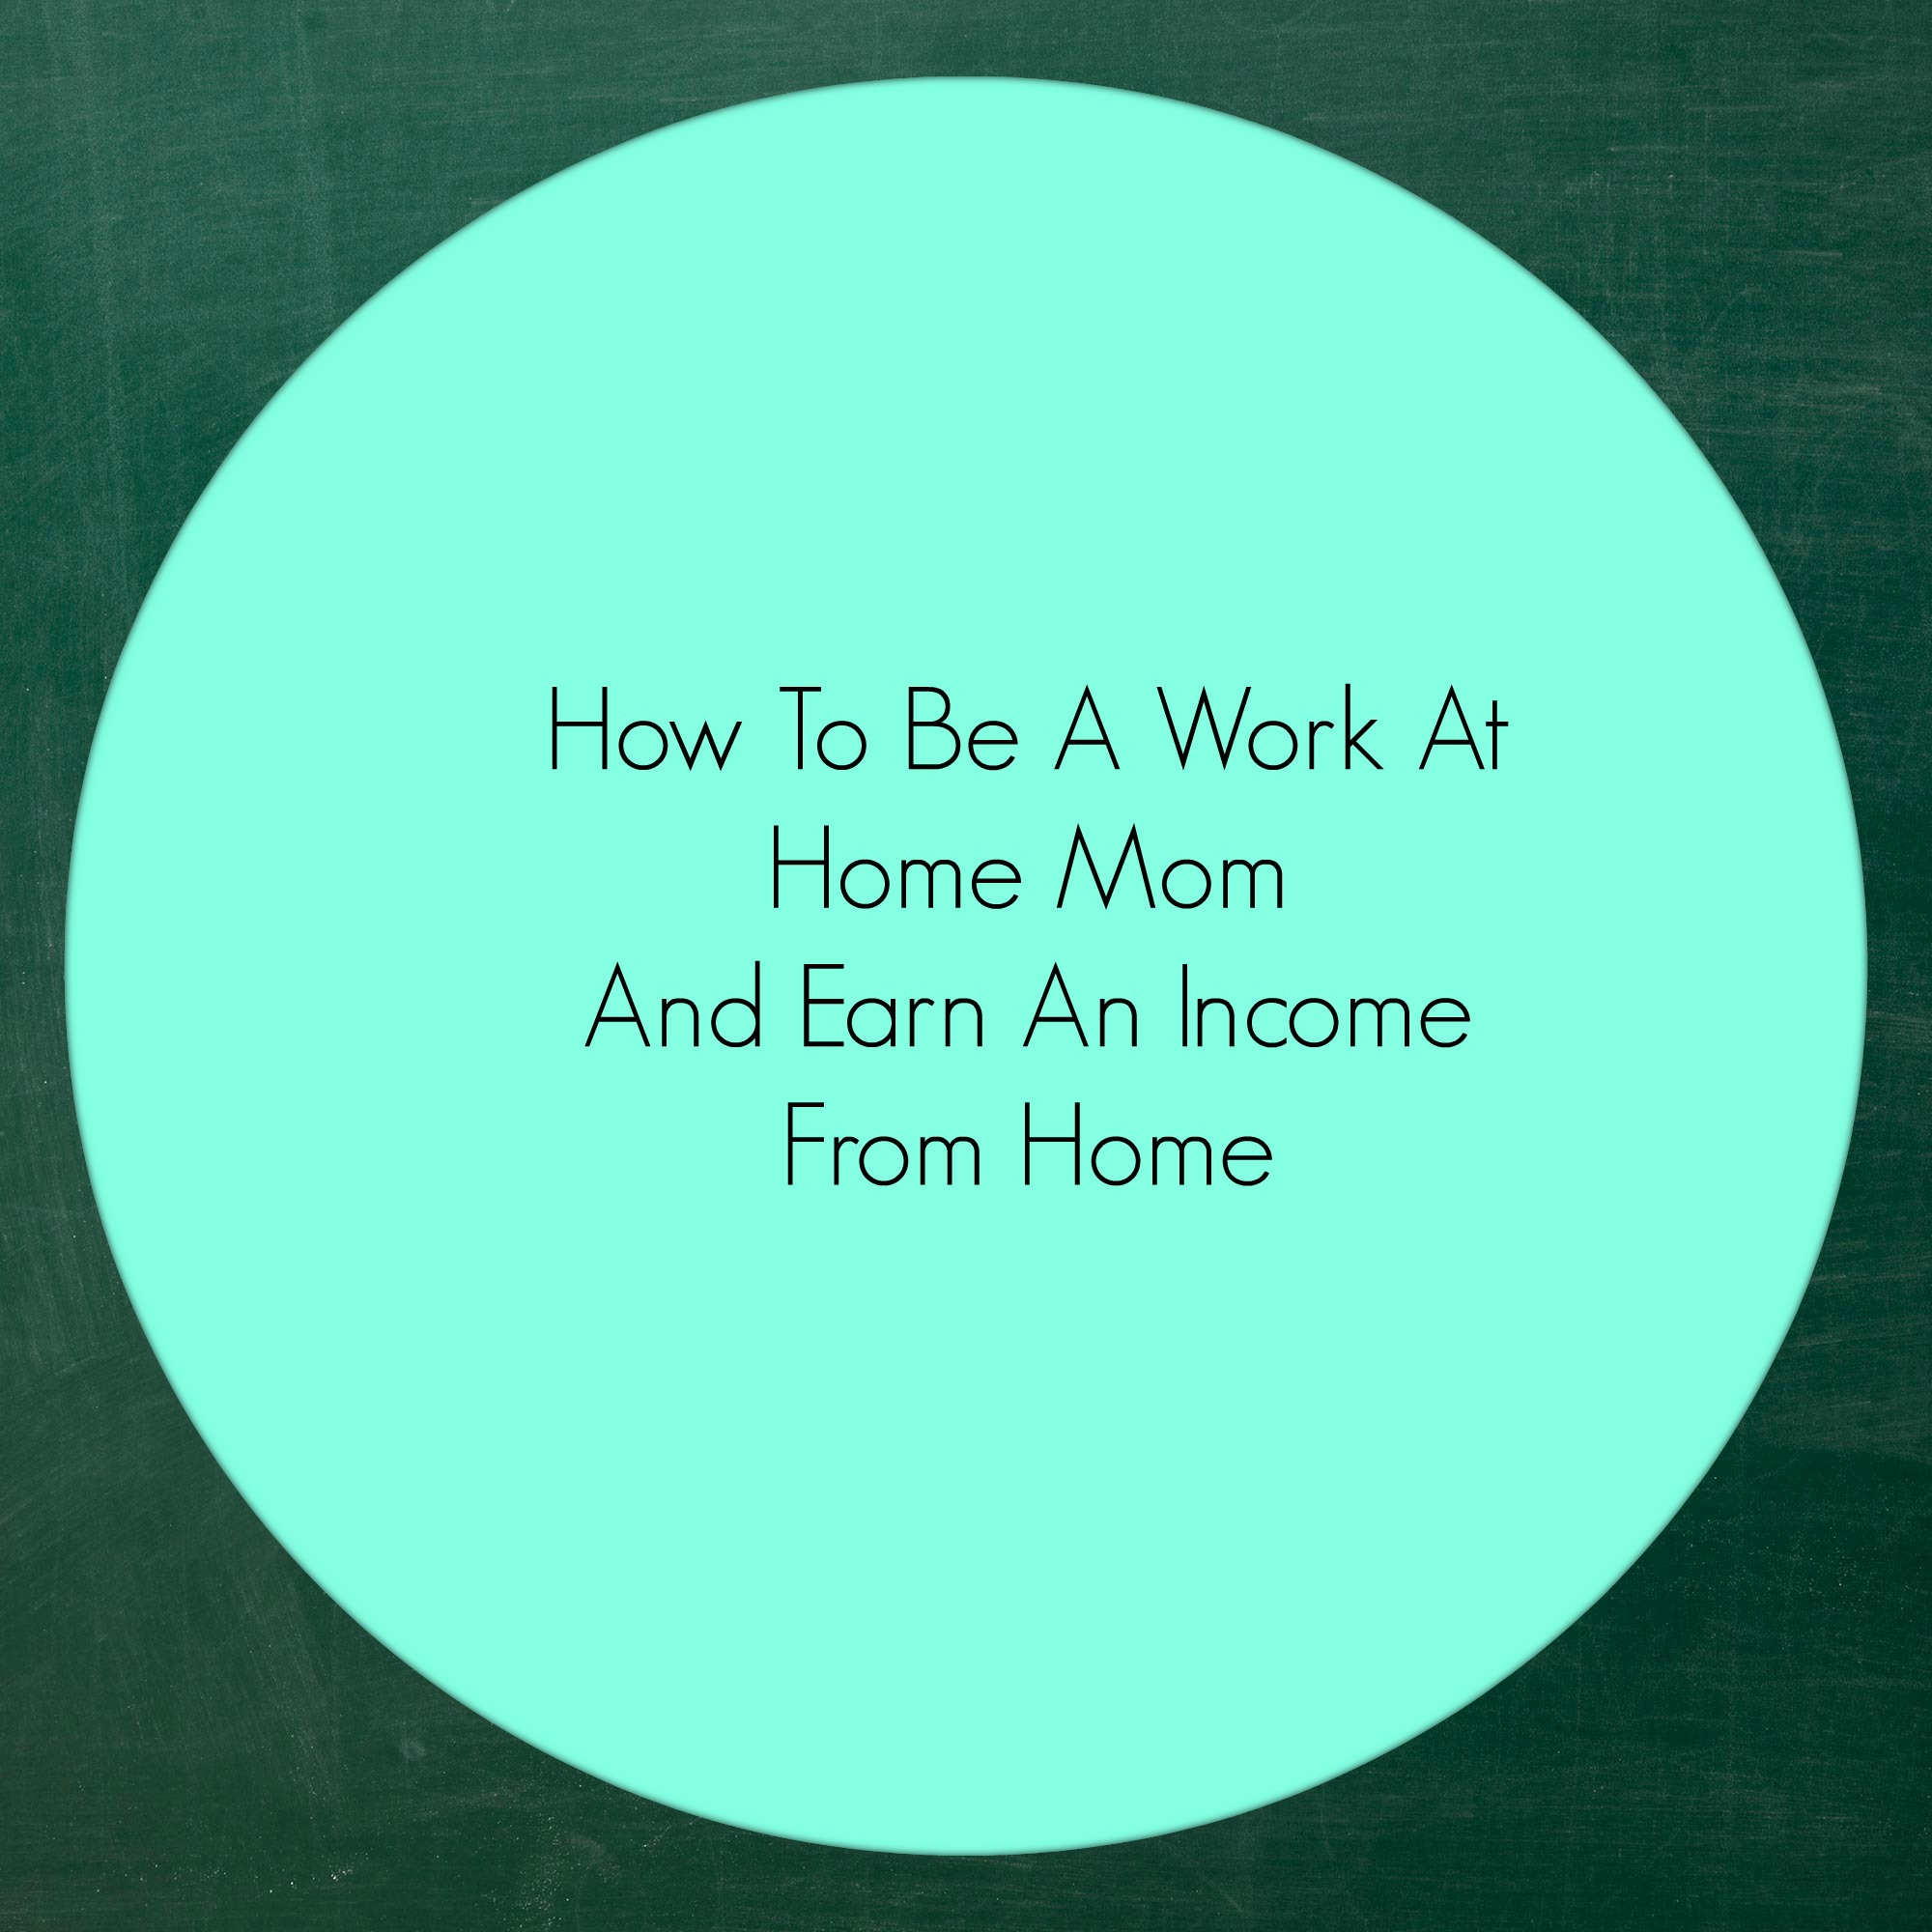 How To Be A Work At Home Mom & Earn an Income From Home